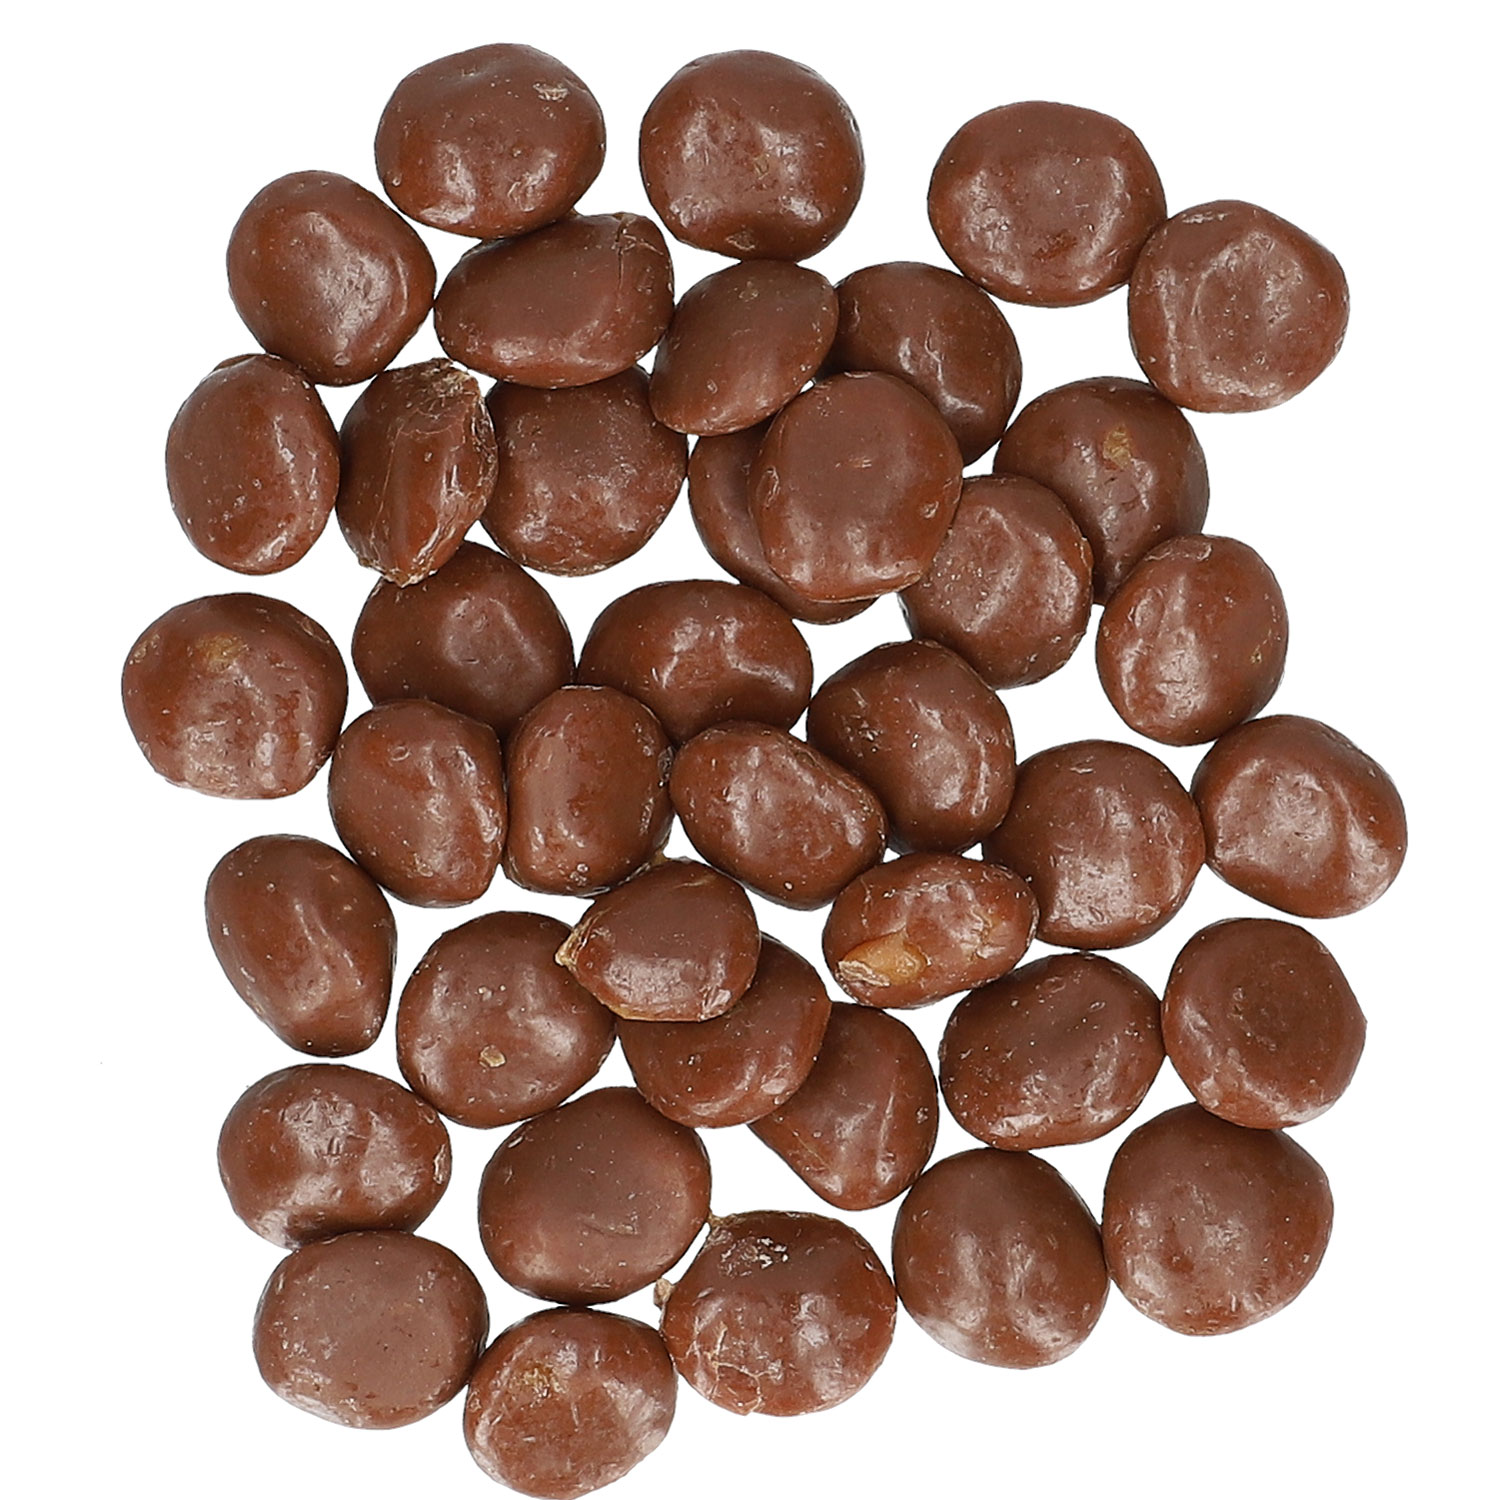 Bhnmocha chocolate caramel amp pebbles - 1 part 1